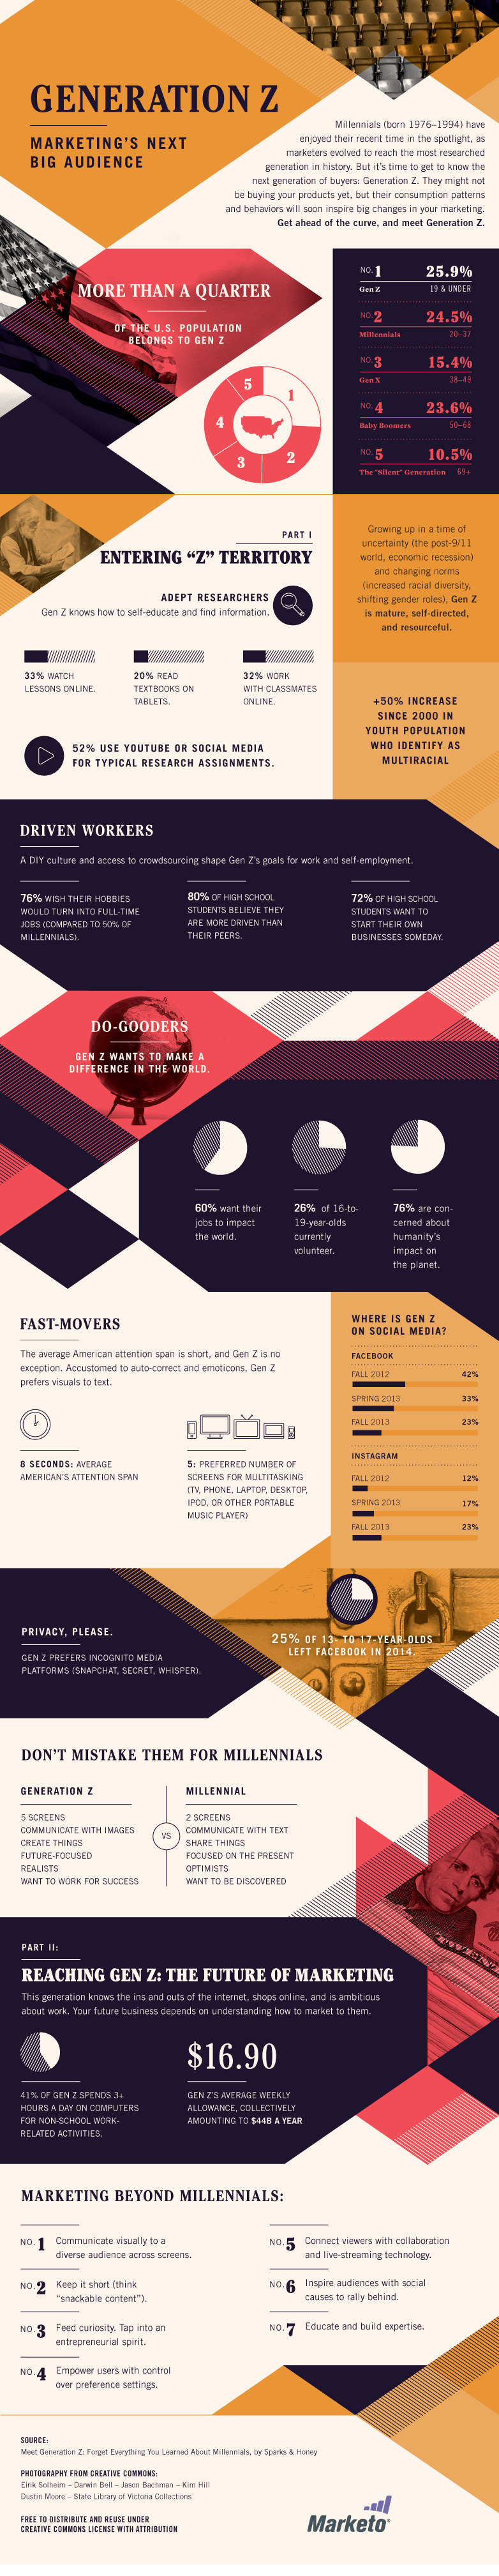 Generation Z: Marketing's Next Big Audience #infographic